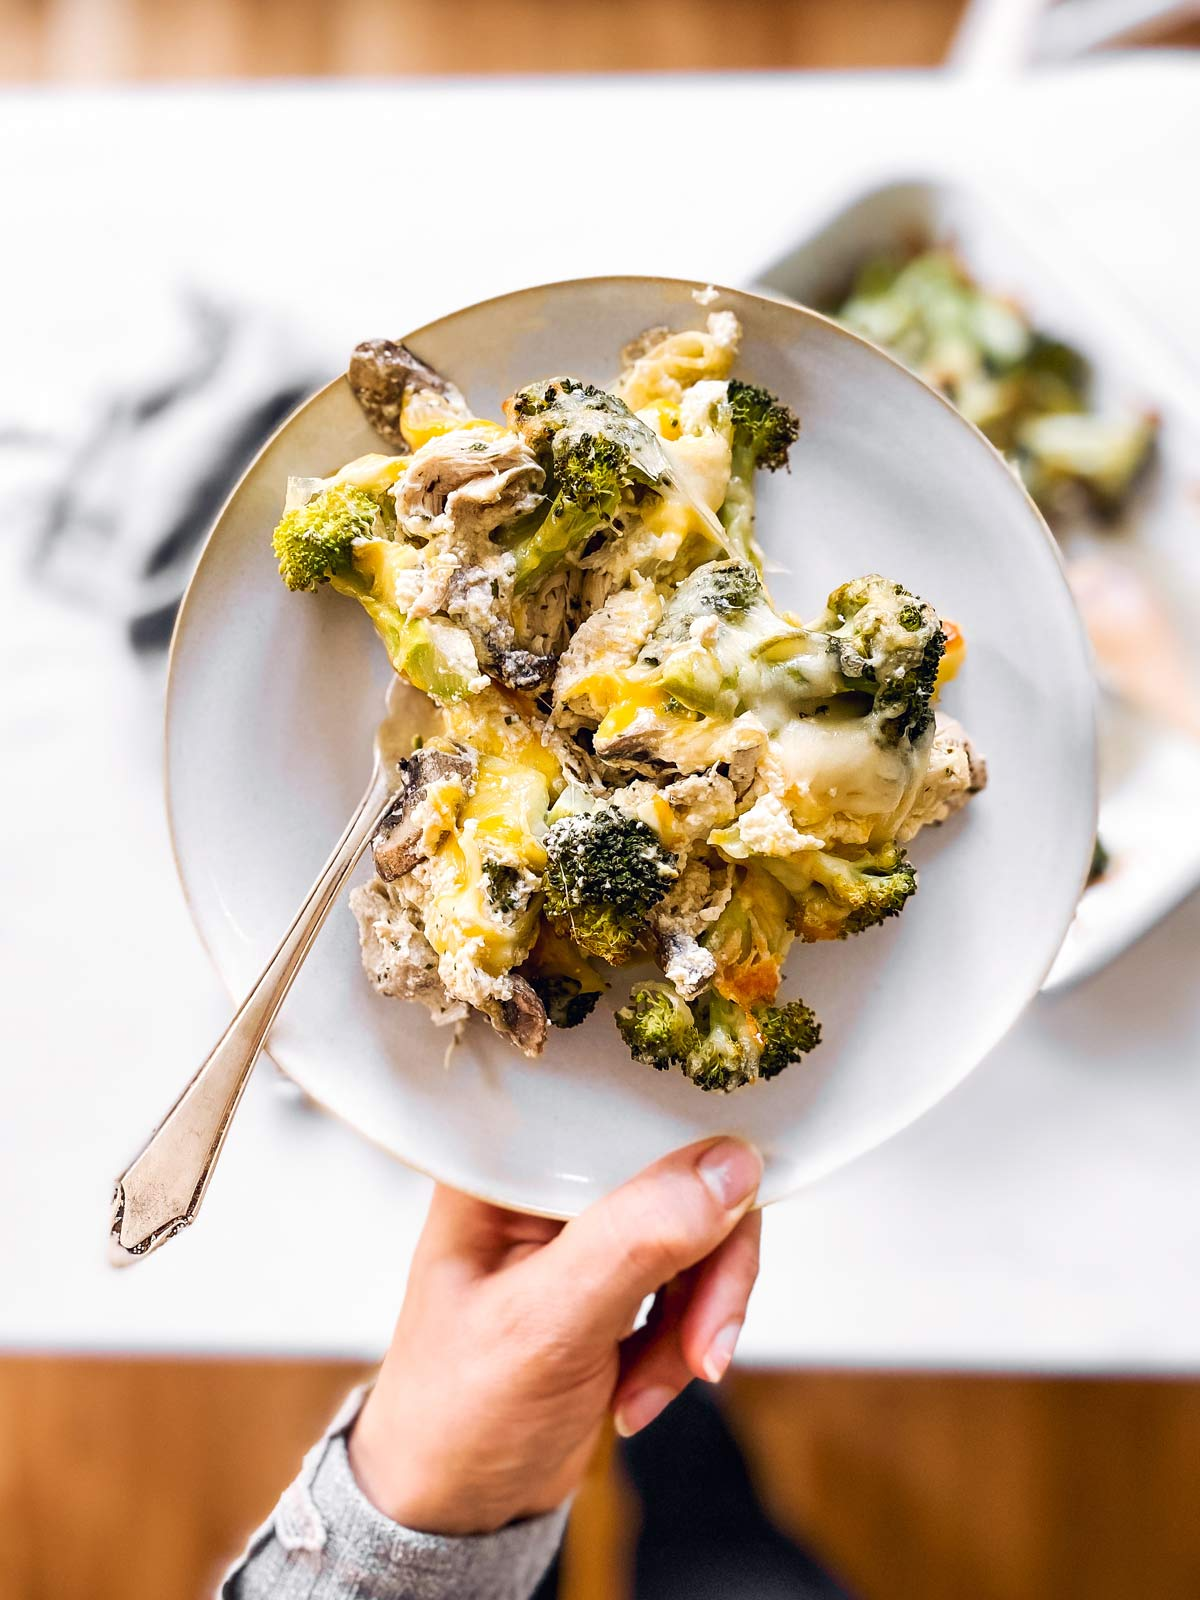 female hand holding a plate with chicken broccoli casserole